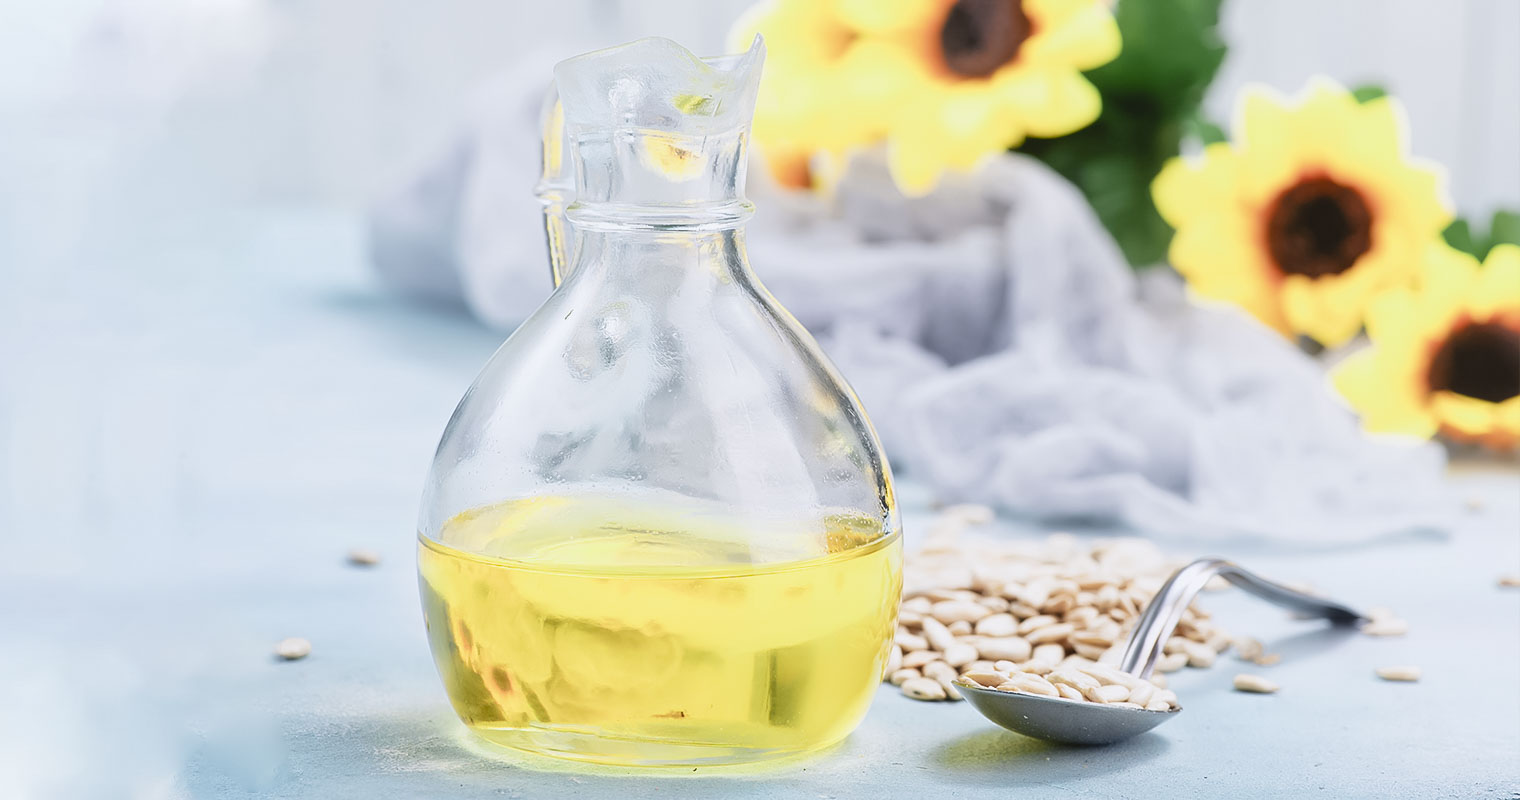 A jar of sunflower oil with sunflower and seeds in the background